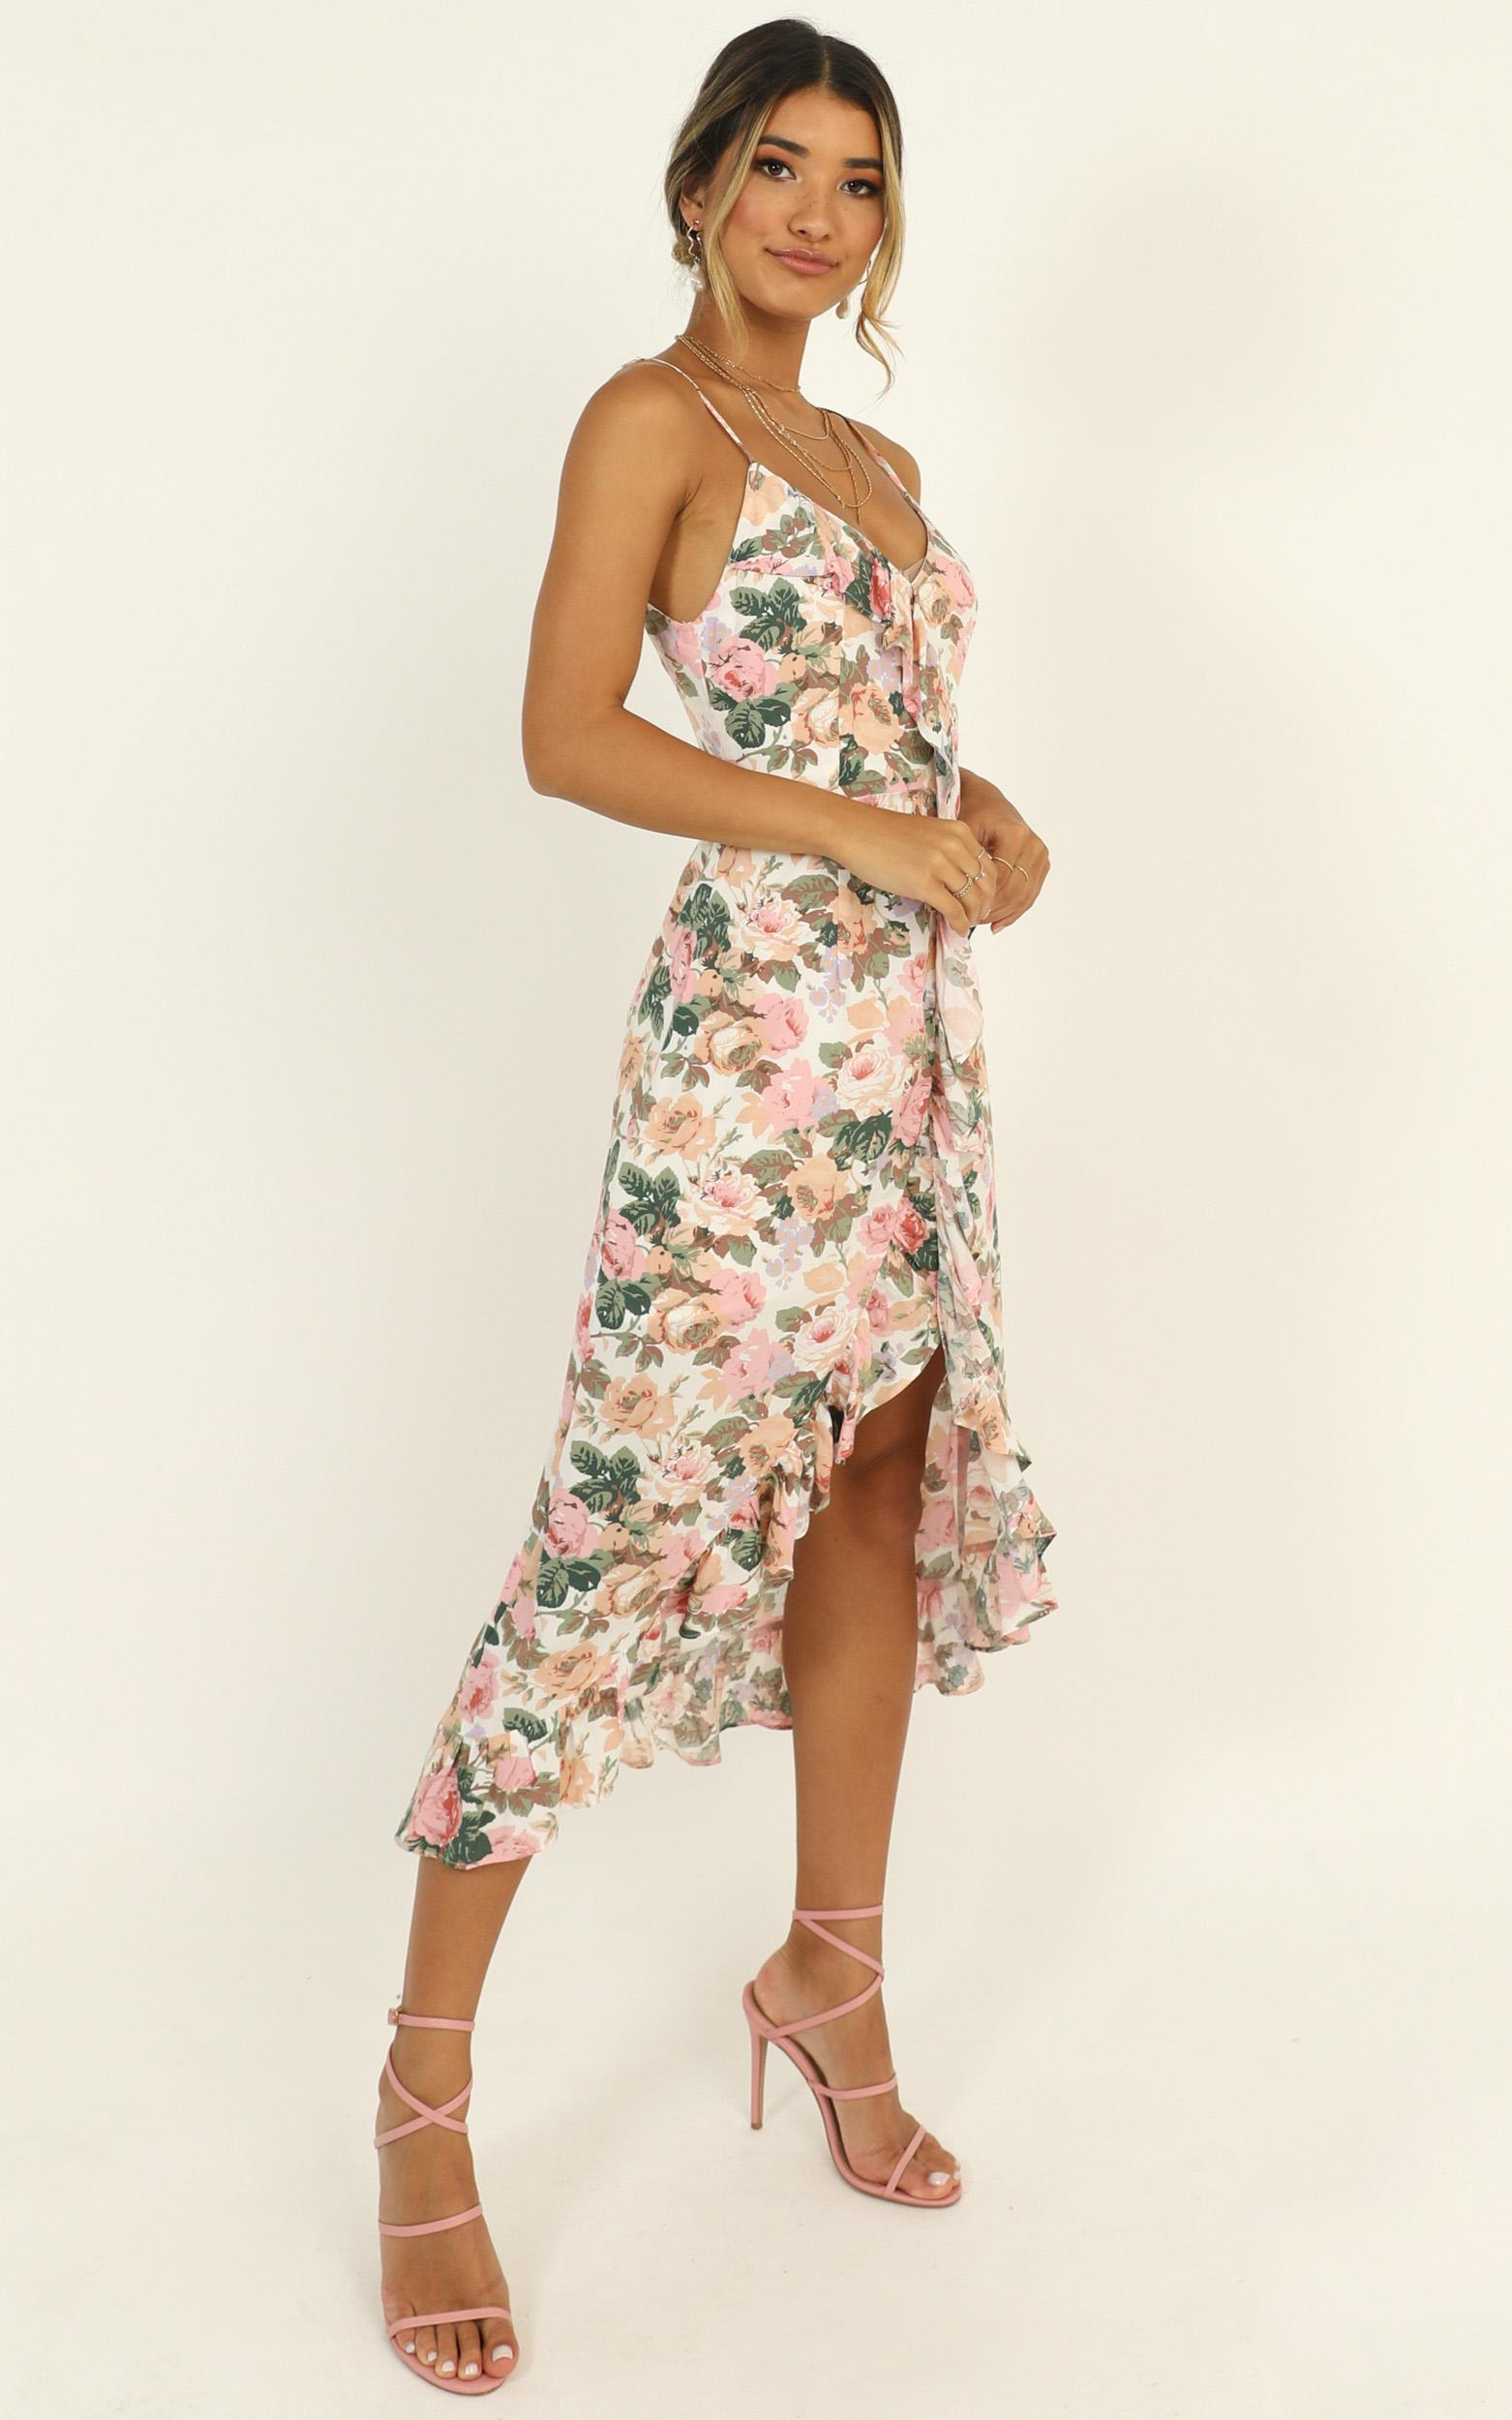 Kiss Me Now Dress in rose floral - 14 (XL), Pink, hi-res image number null